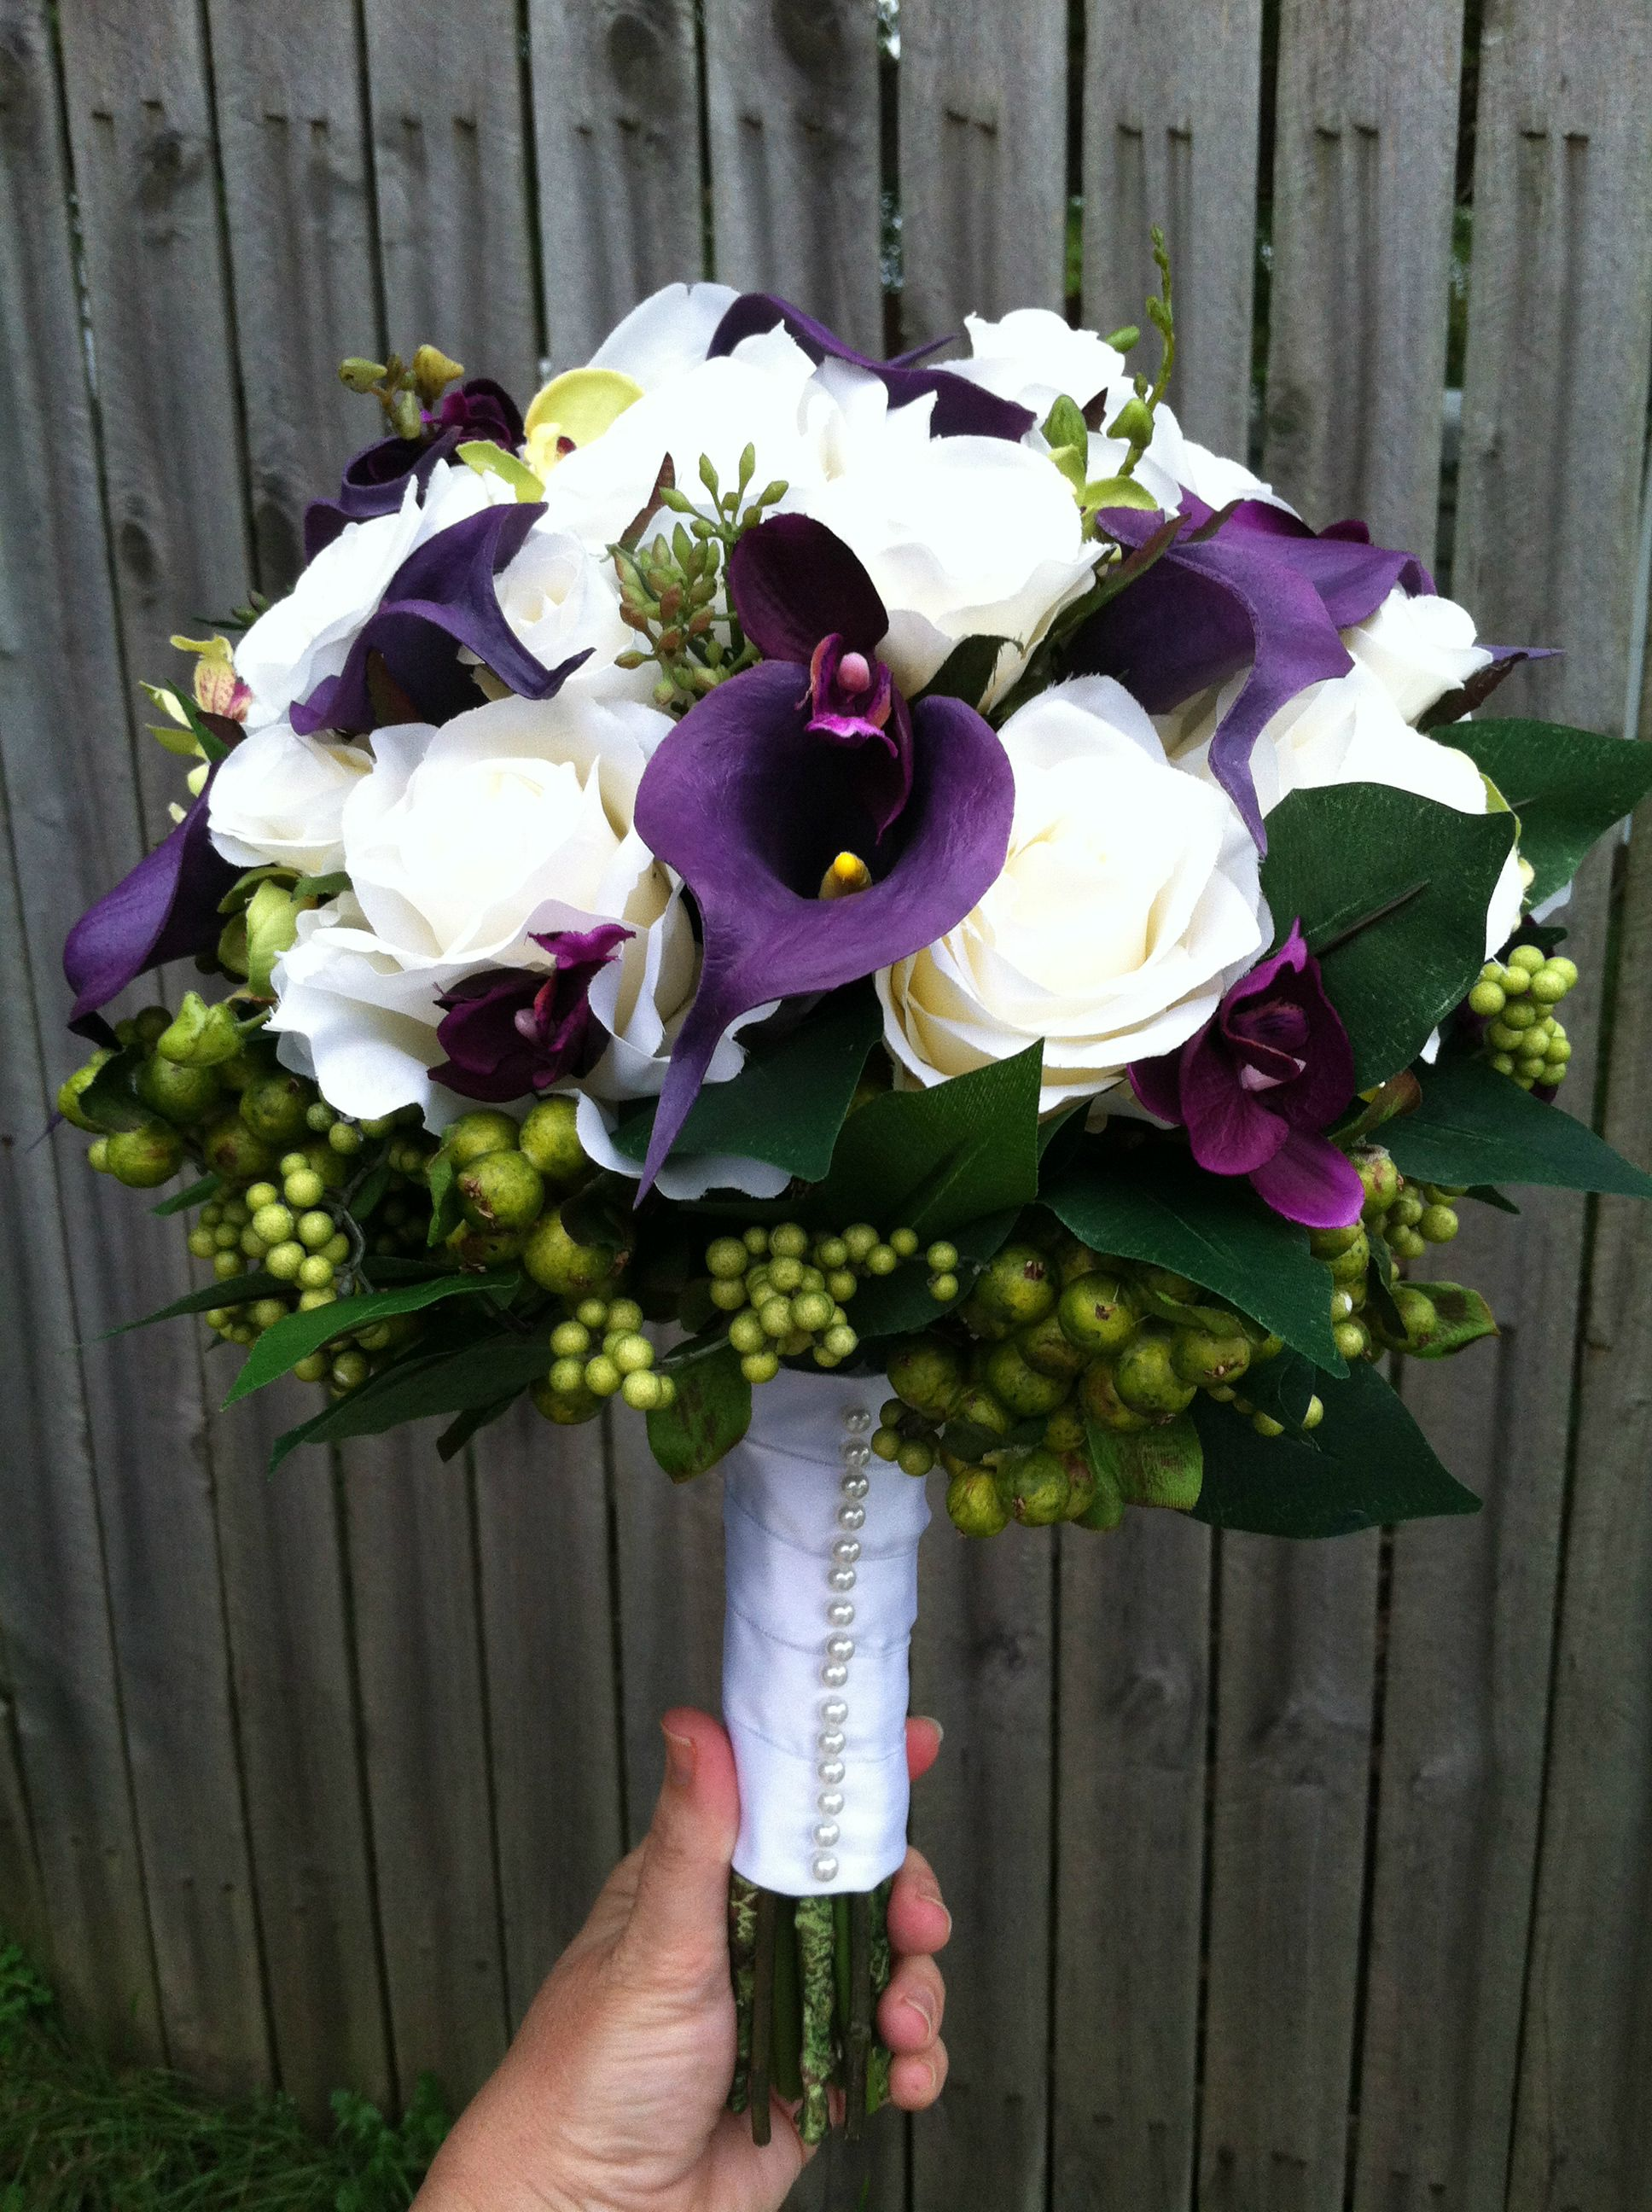 Artificial white rose and purple calla lily bouquet wedding ideas artificial white rose and purple calla lily bouquet izmirmasajfo